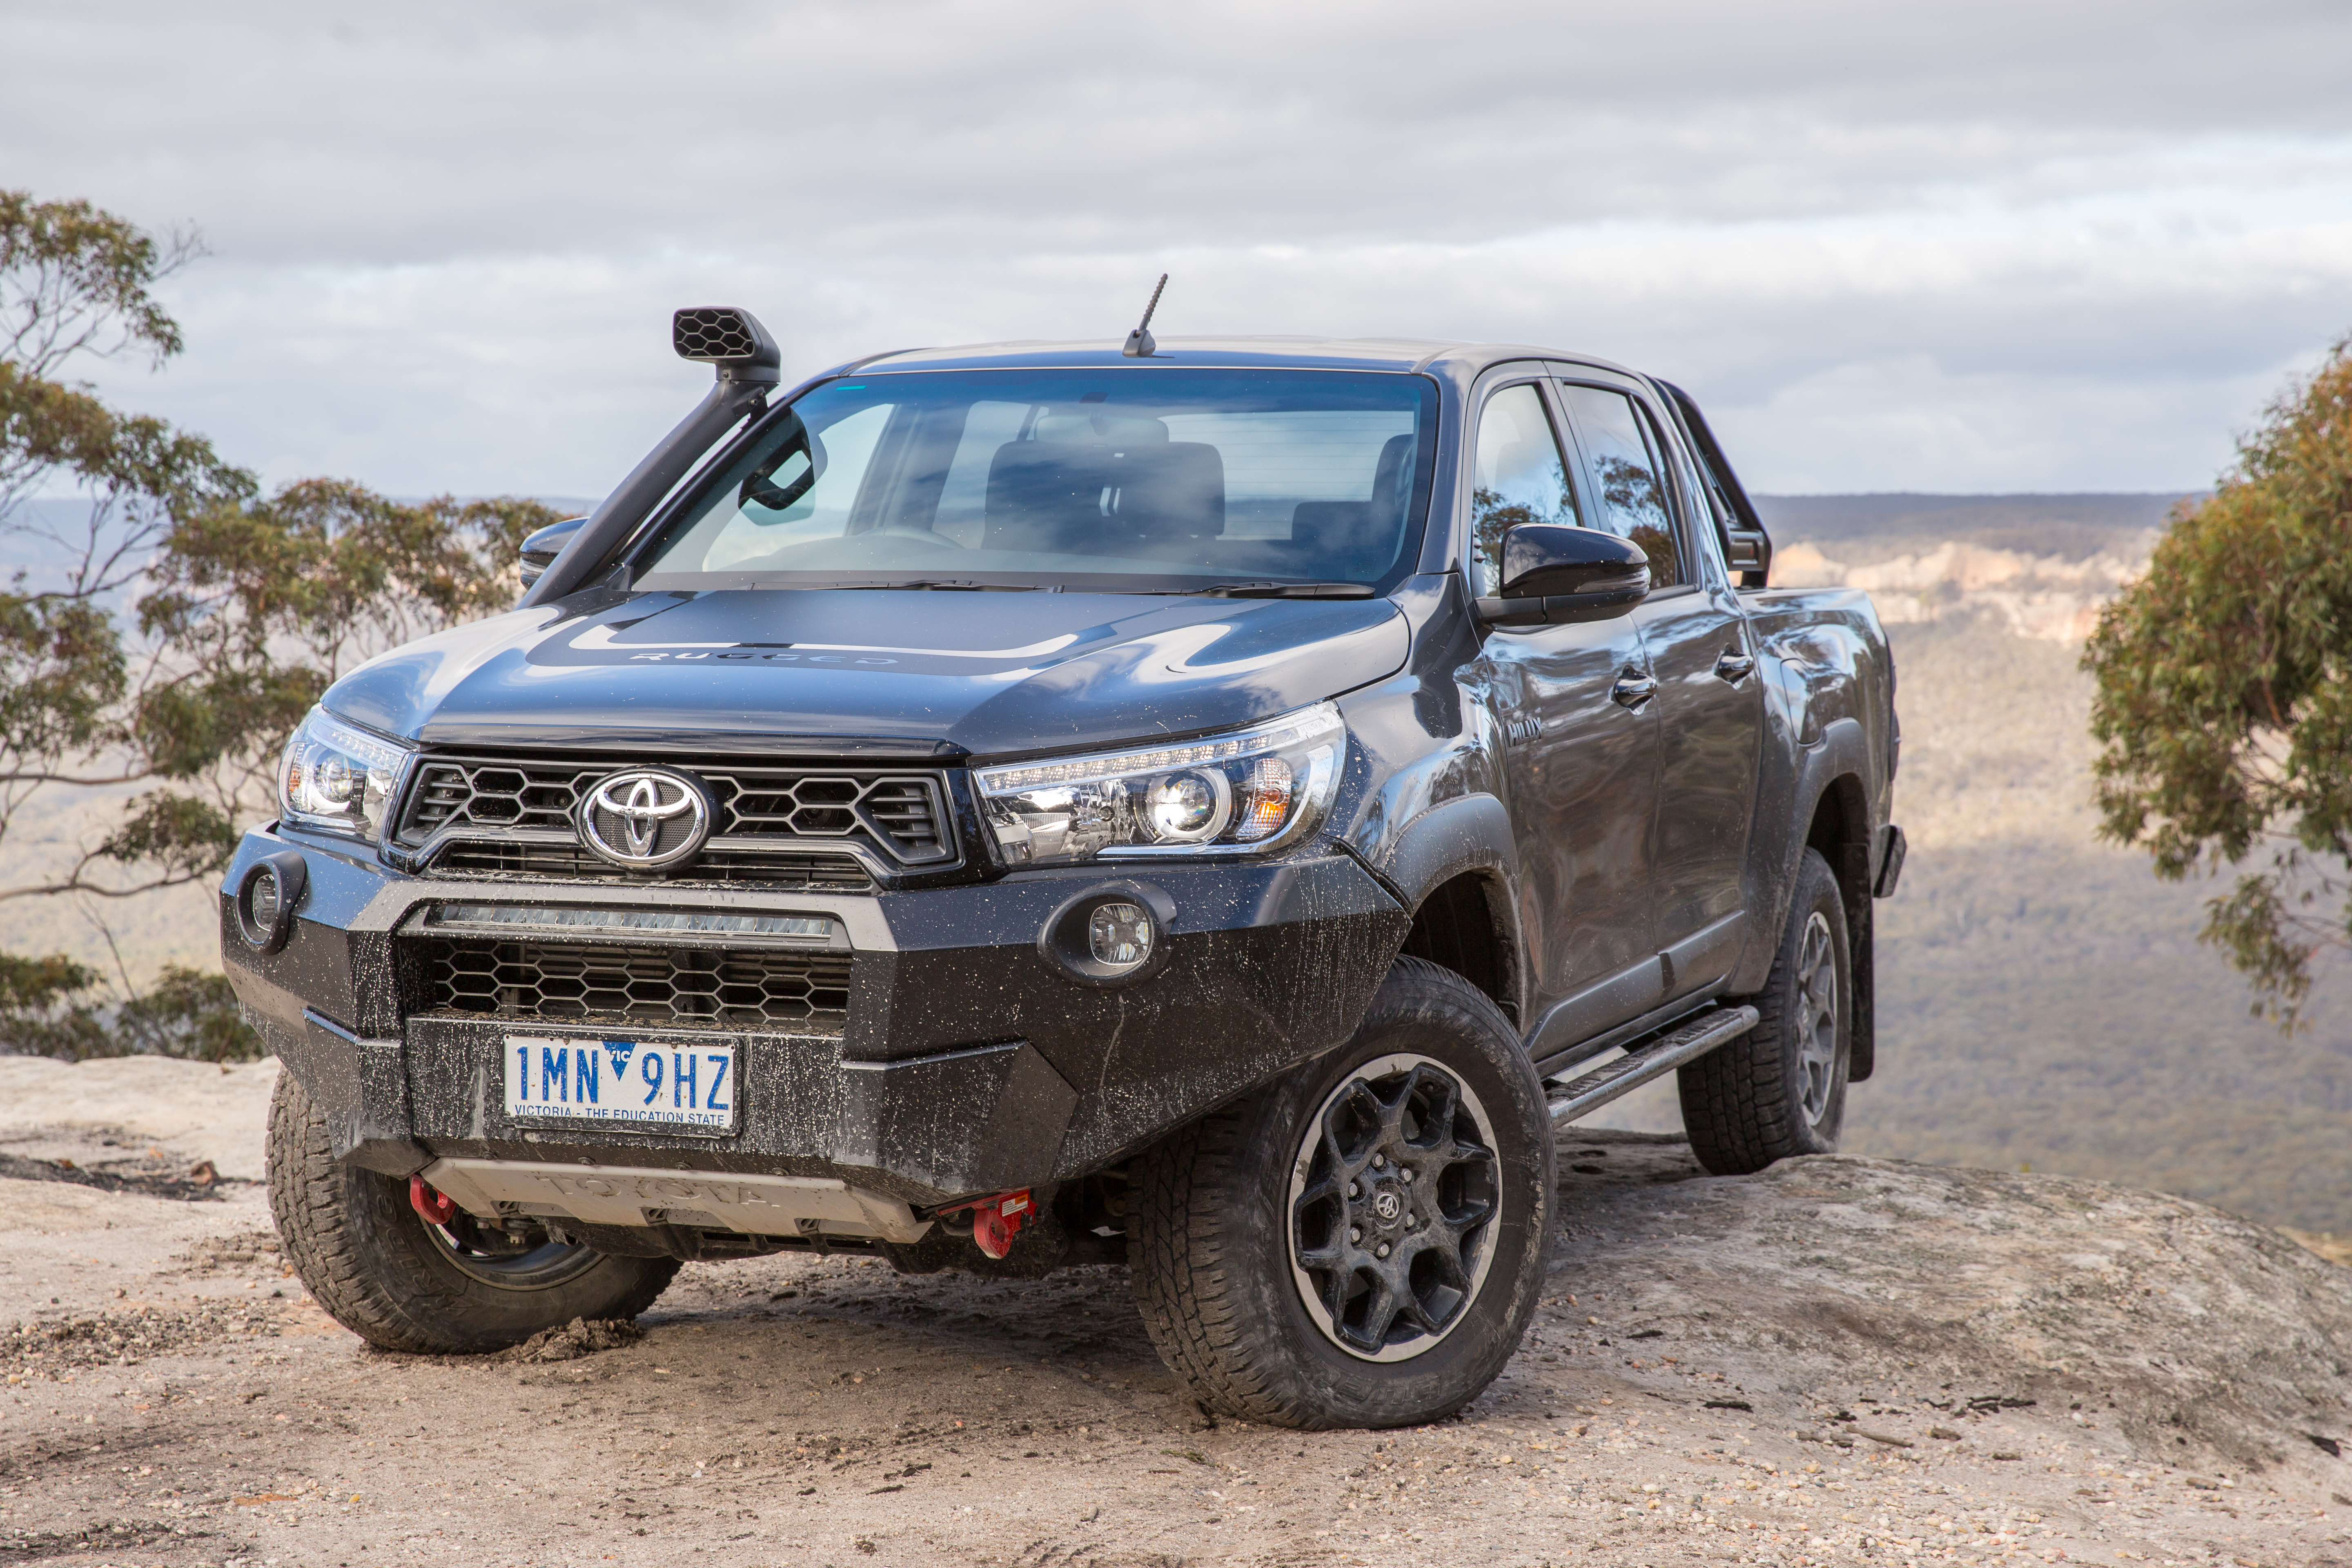 Is Toyota looking to AdBlue to address its diesel issues